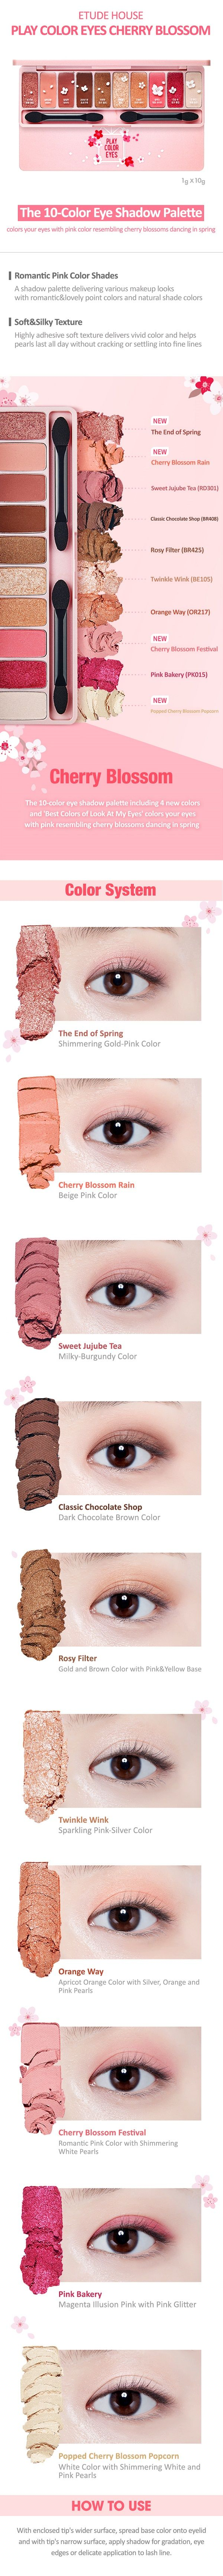 Etude House - Play Color Eyes #Cherry Blossom